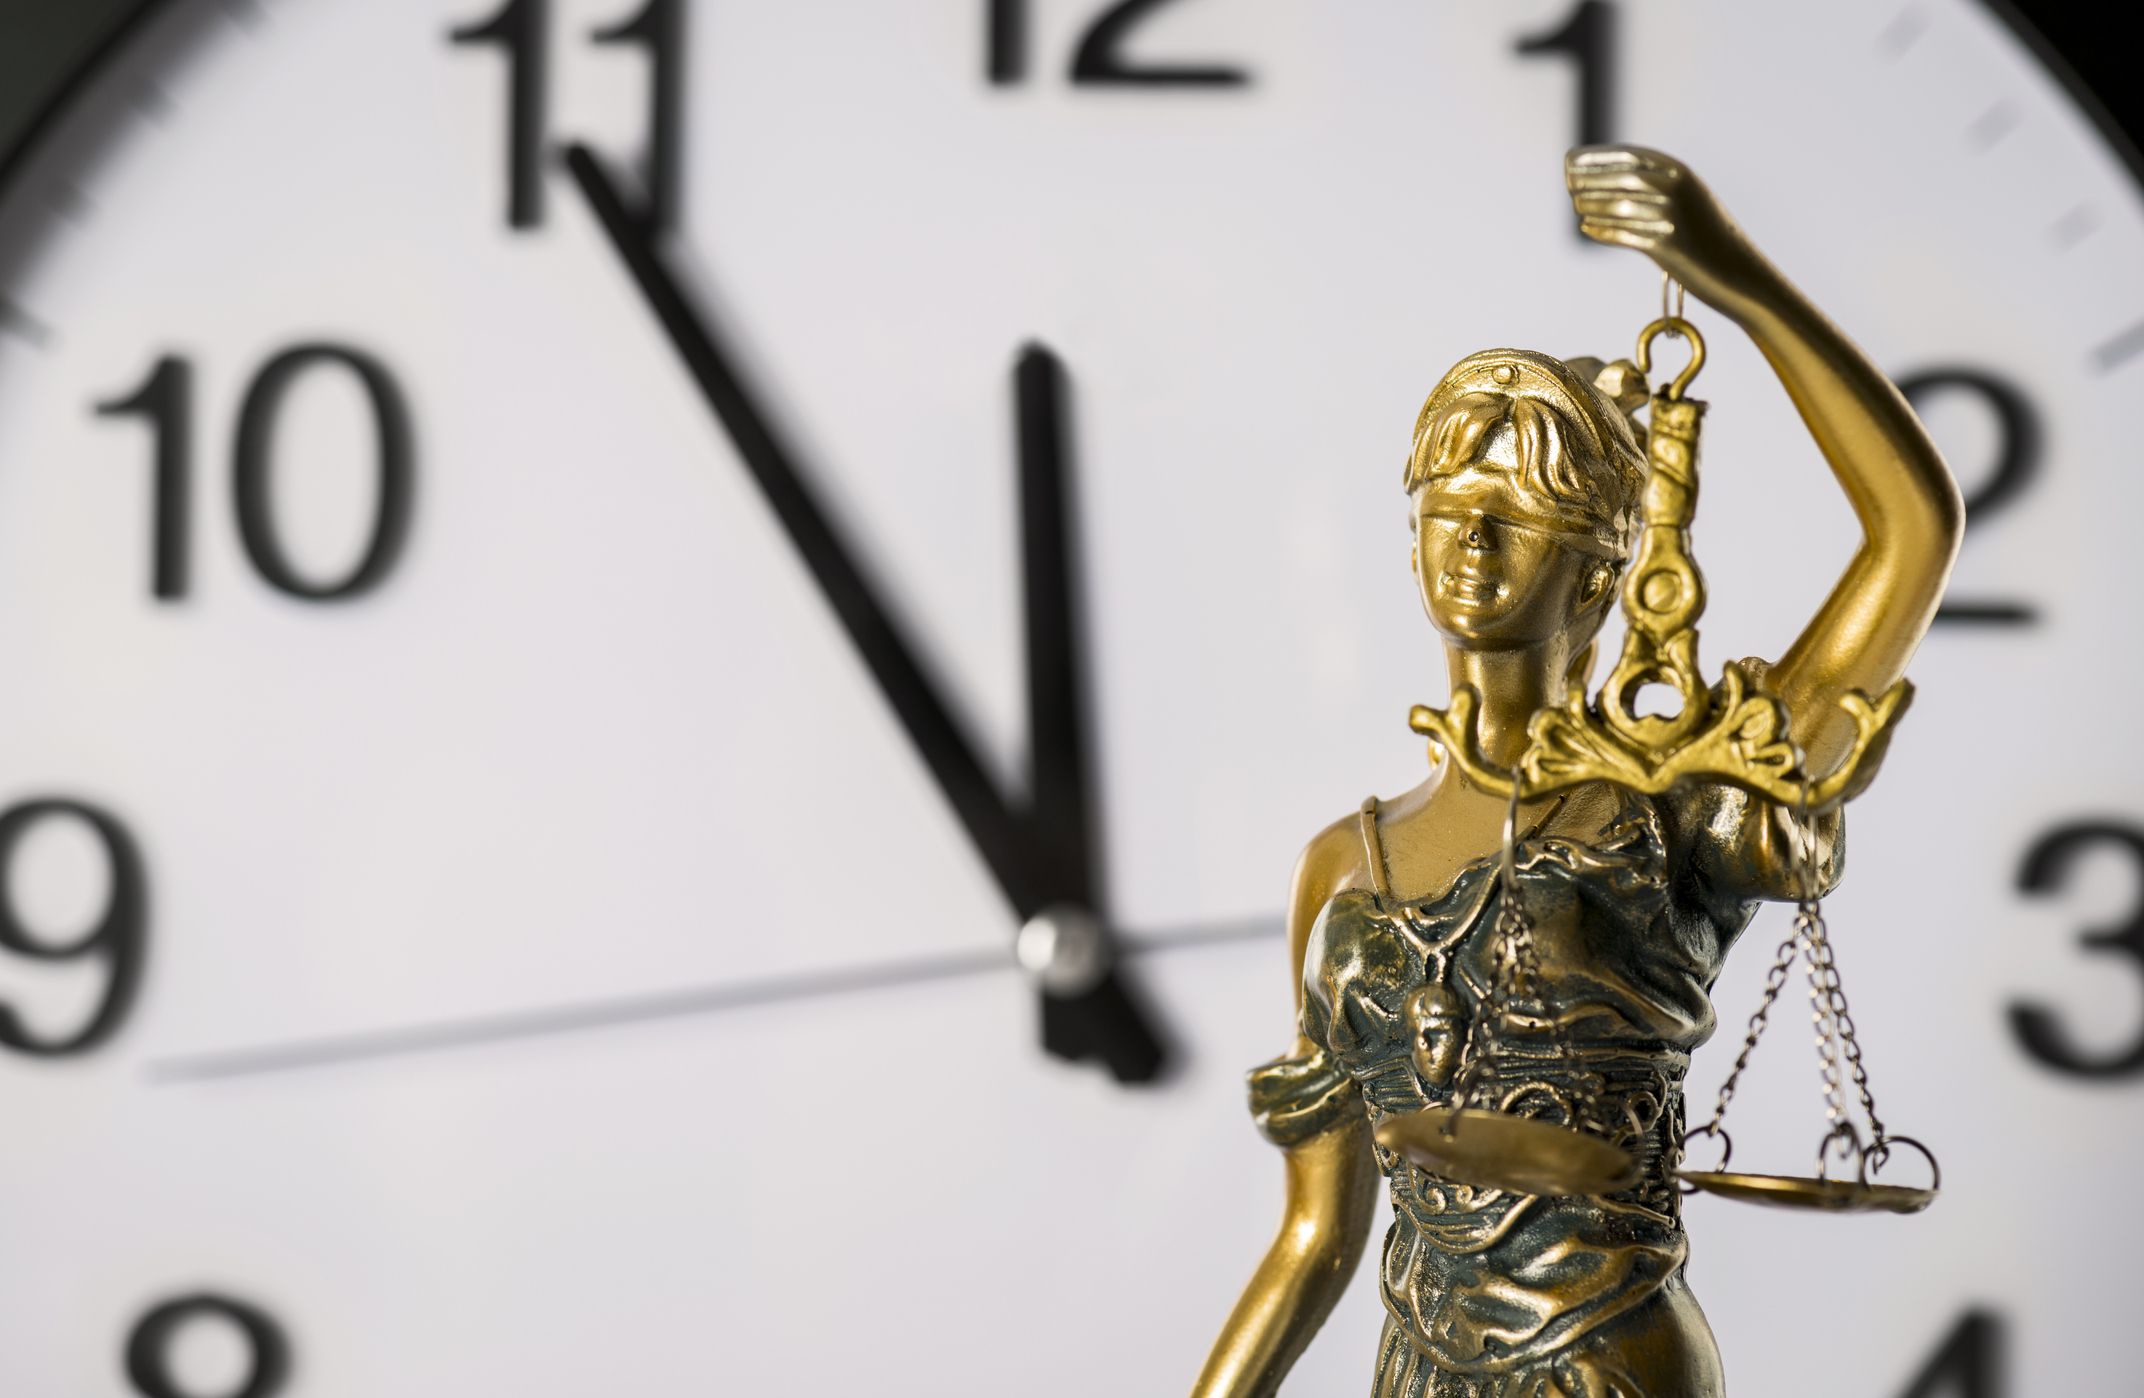 Clock with Lady of Justice statue